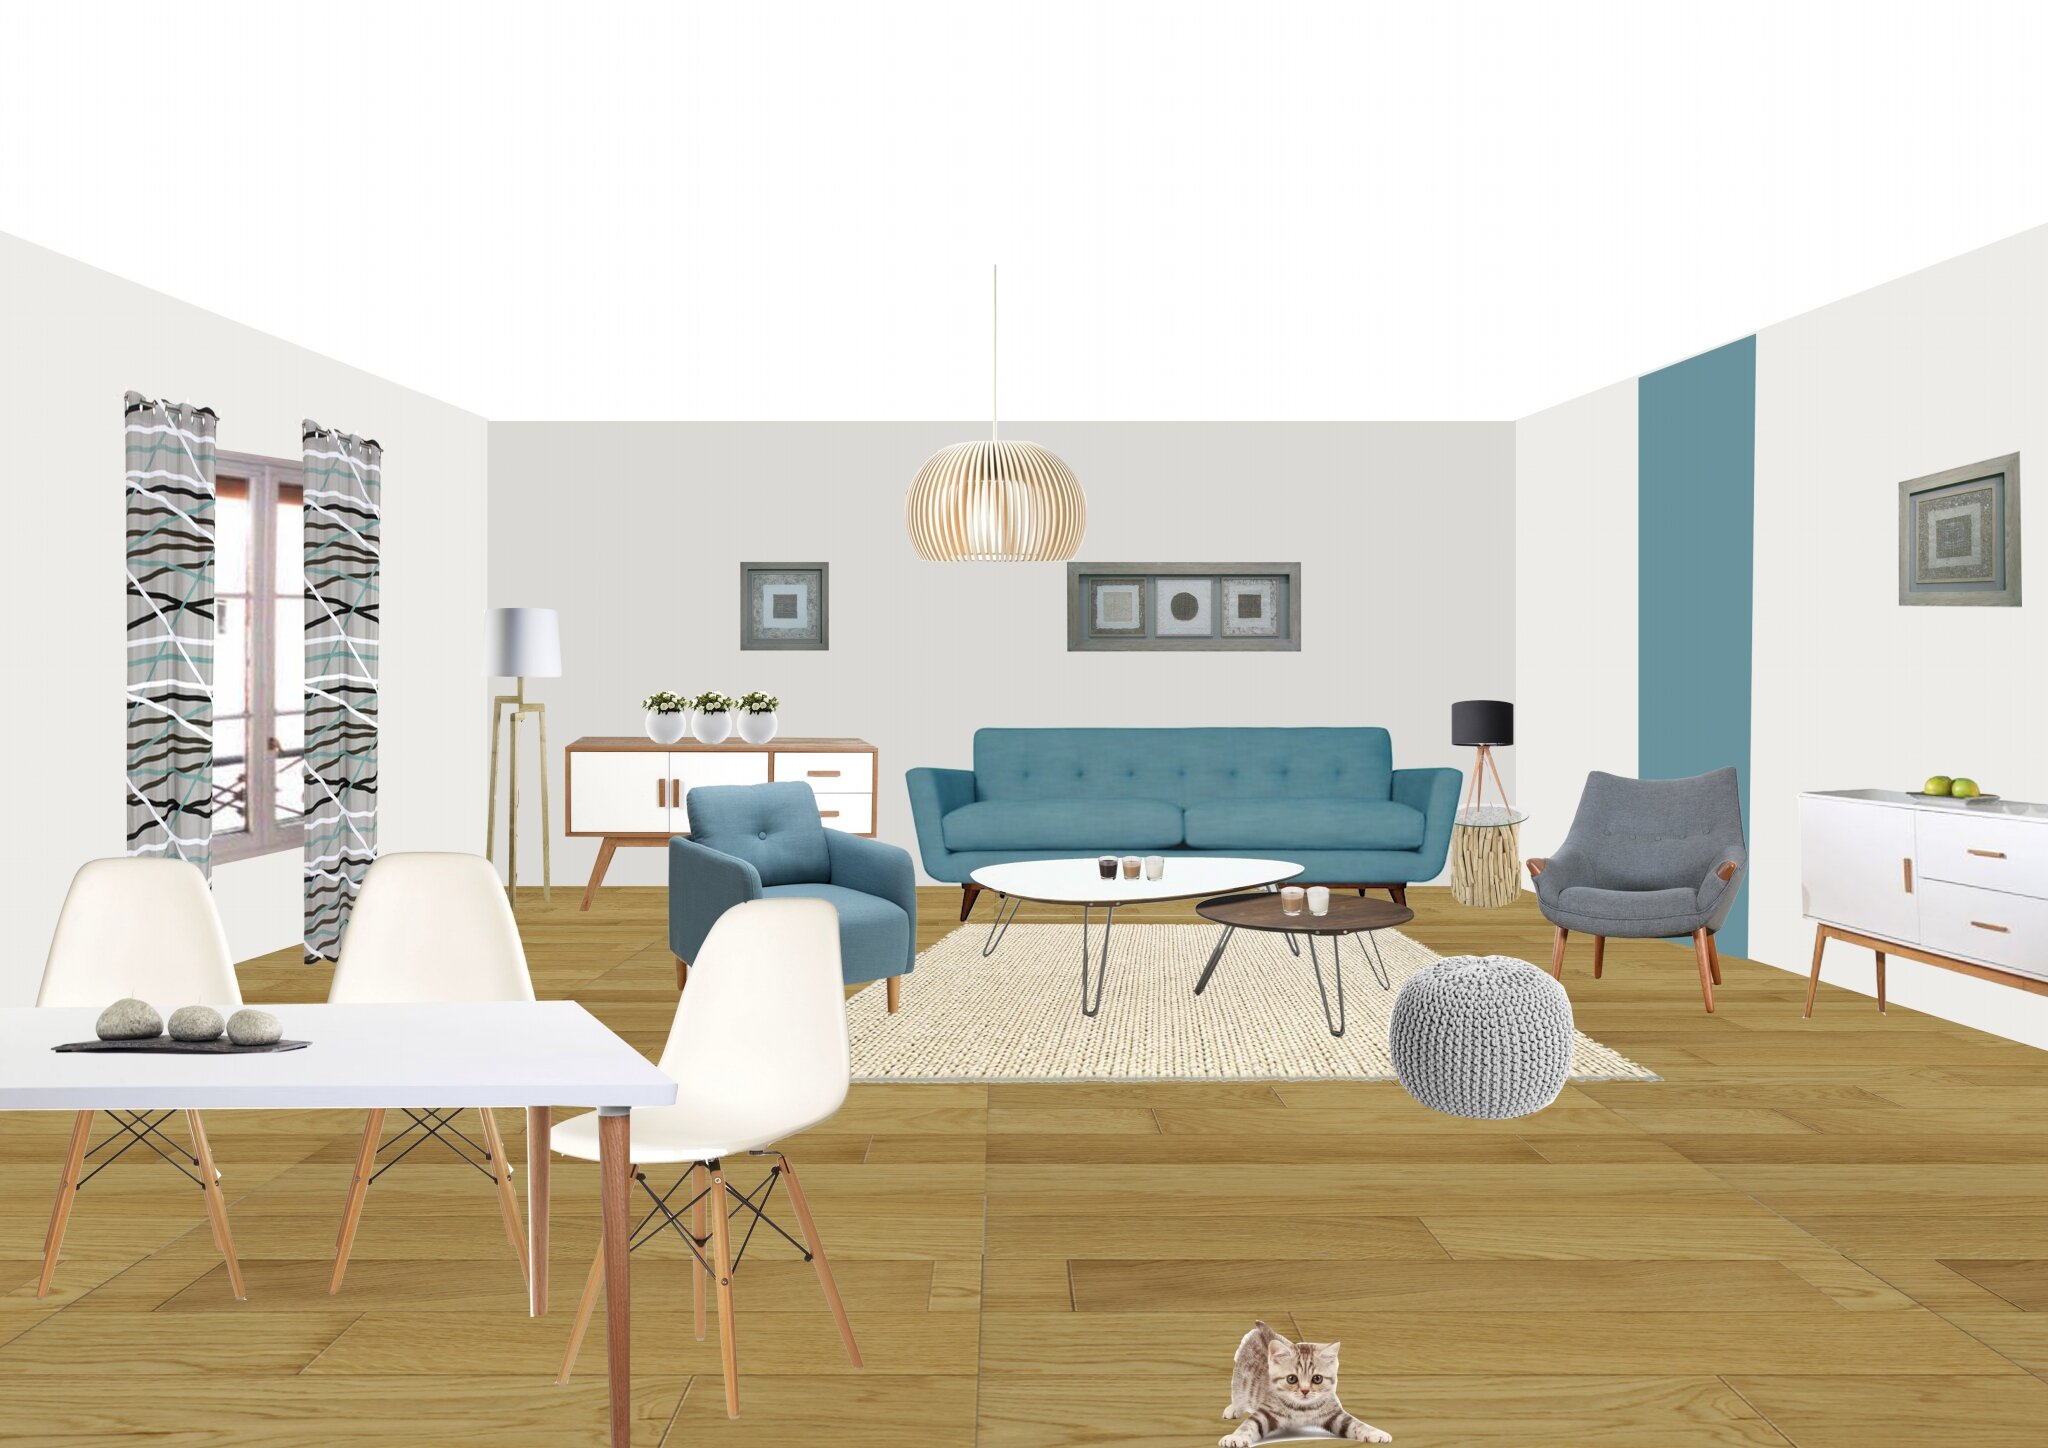 Perspective sous photoshop style scandinave so d co for Style de deco interieur